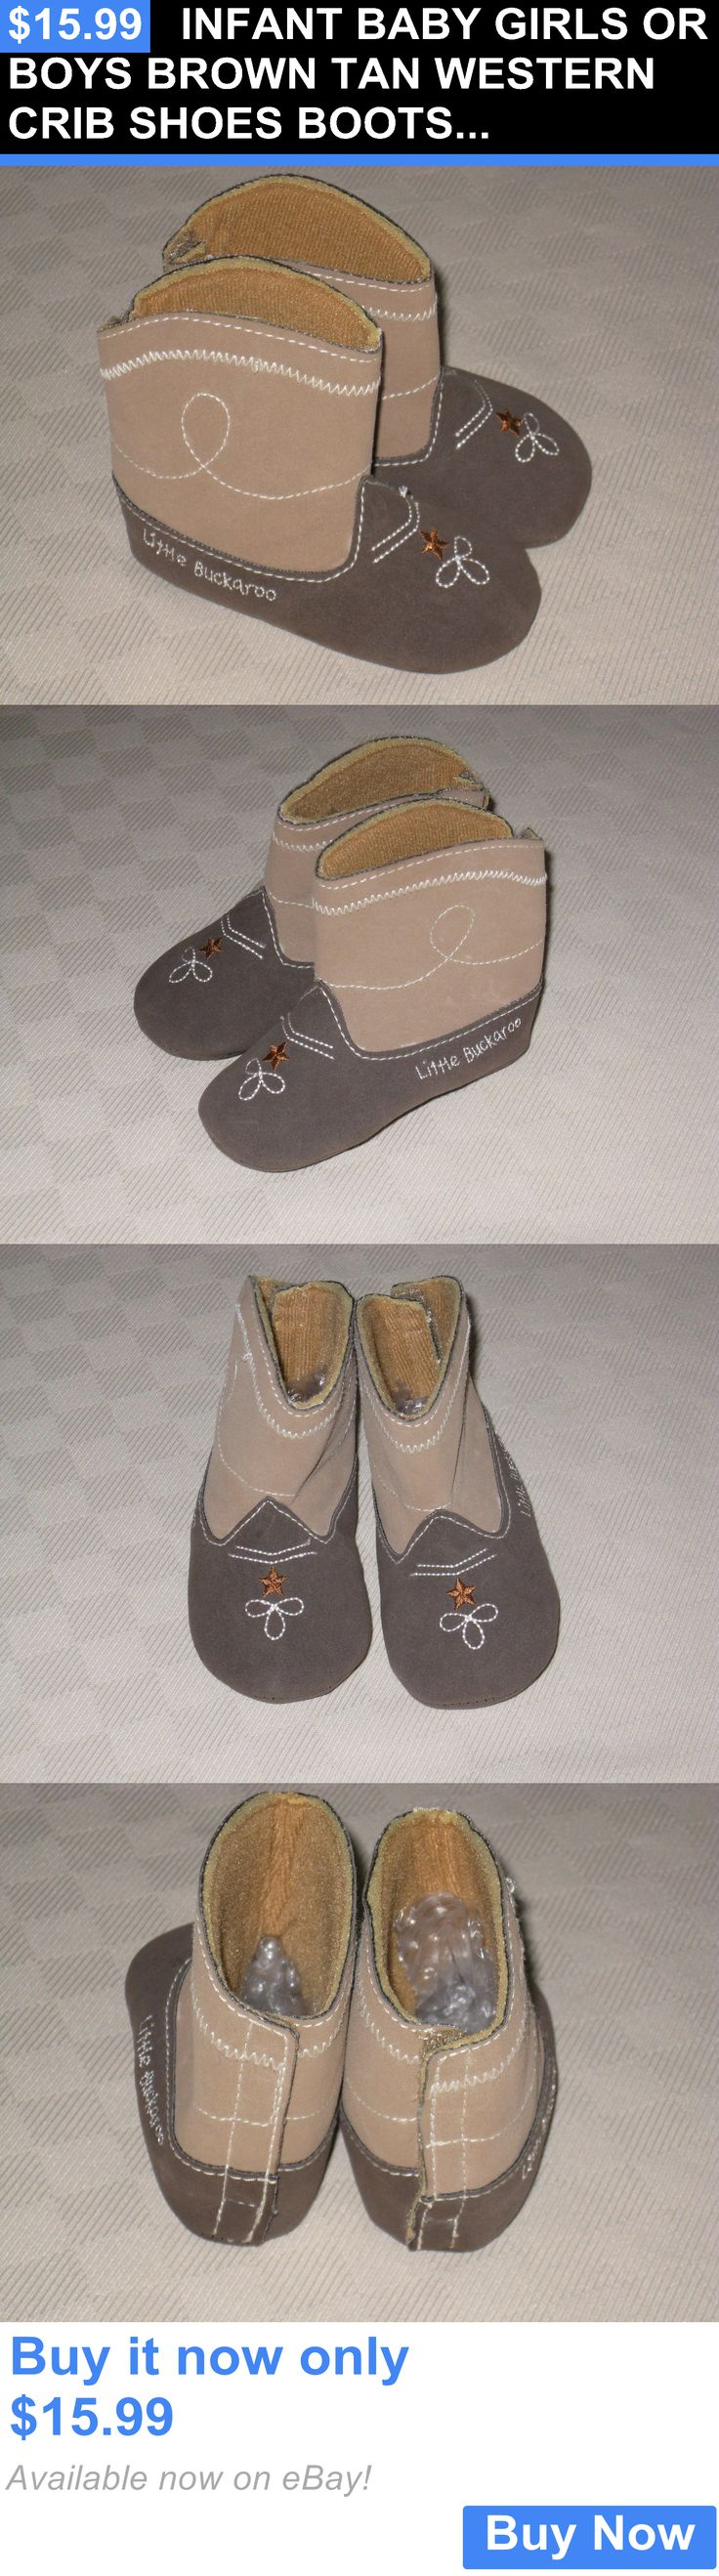 Baby Boy Shoes: Infant Baby Girls Or Boys Brown Tan Western Crib Shoes Boots Size 3-6 M Lknw BUY IT NOW ONLY: $15.99